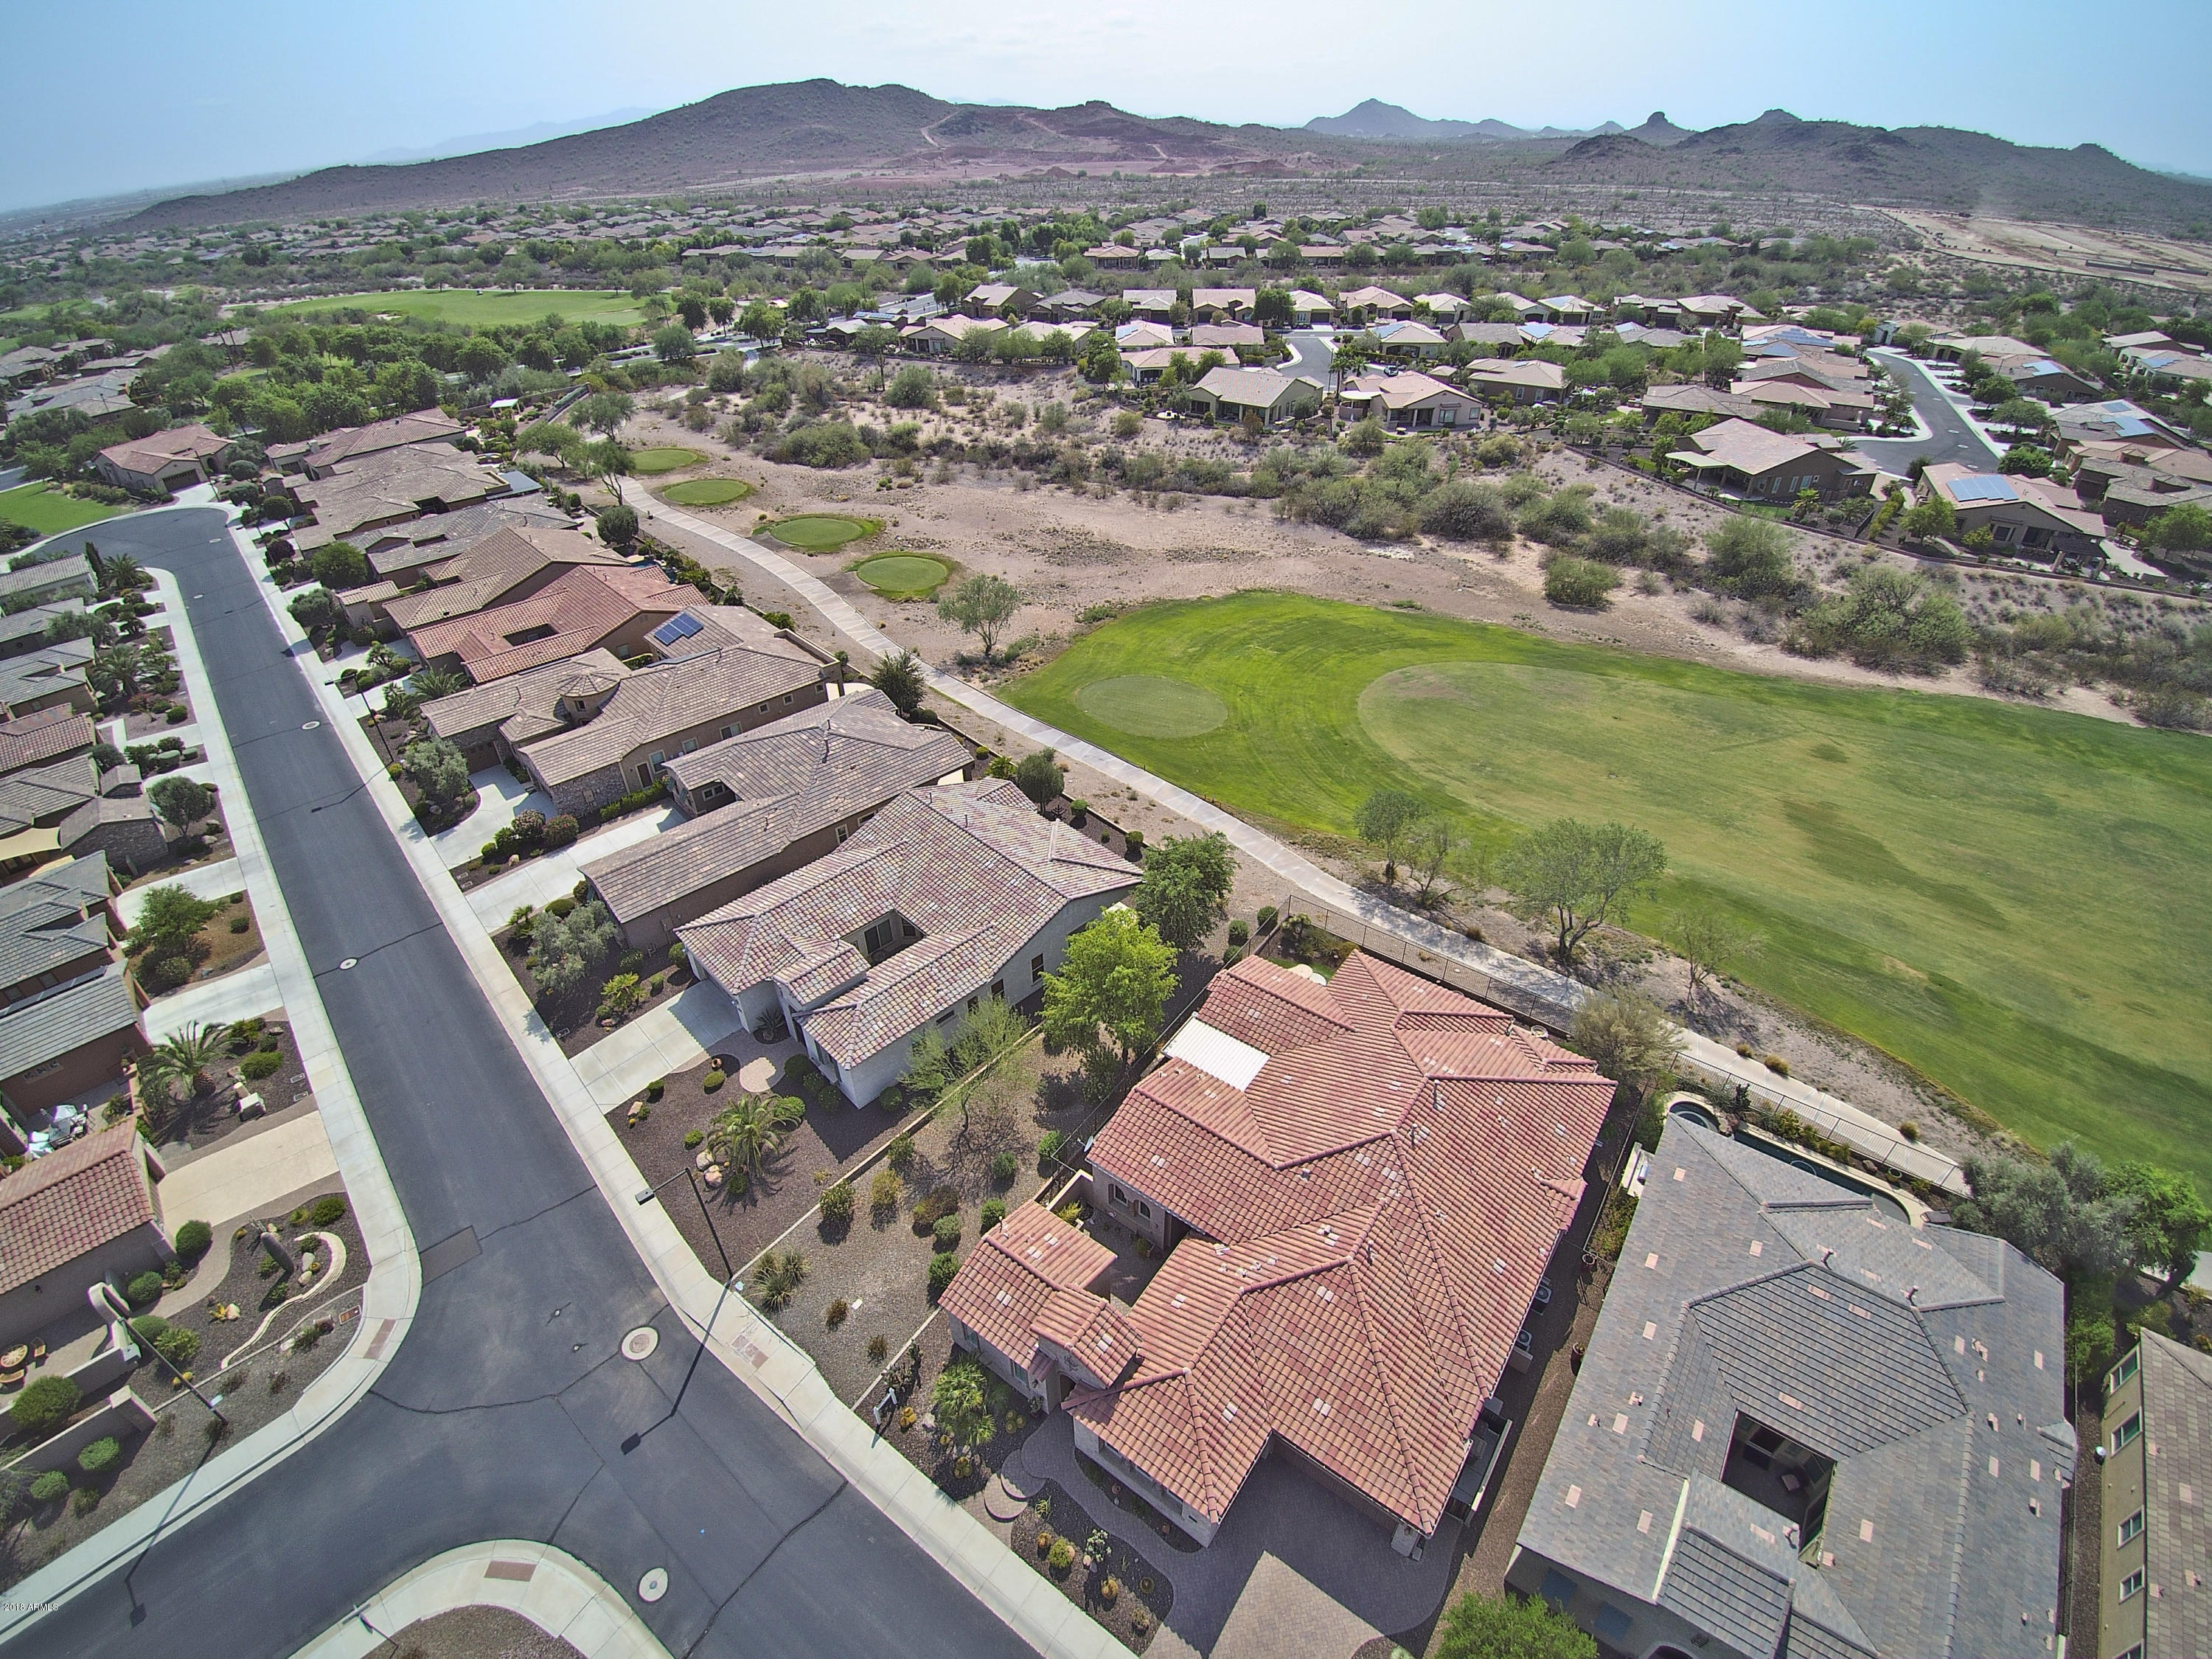 MLS 5805827 28470 N 128TH Drive, Peoria, AZ 85383 Peoria AZ Adult Community